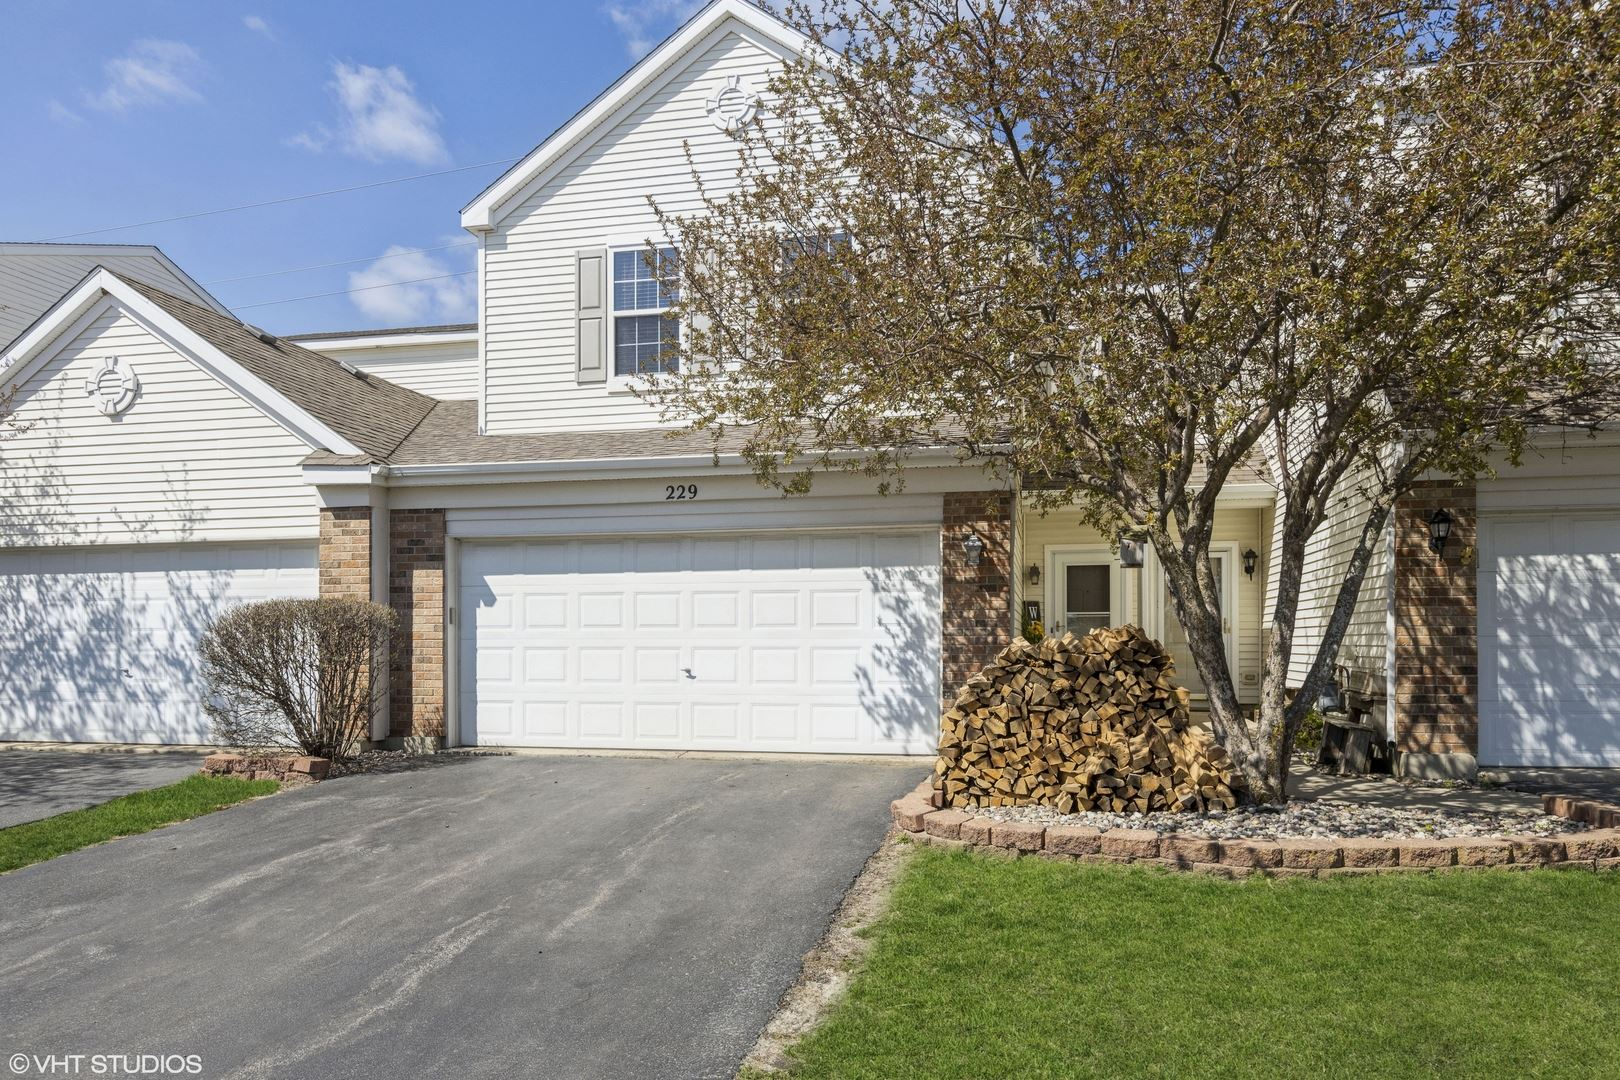 Photo of 229 Parkside Drive, Shorewood, IL 60404 (MLS # 11054149)